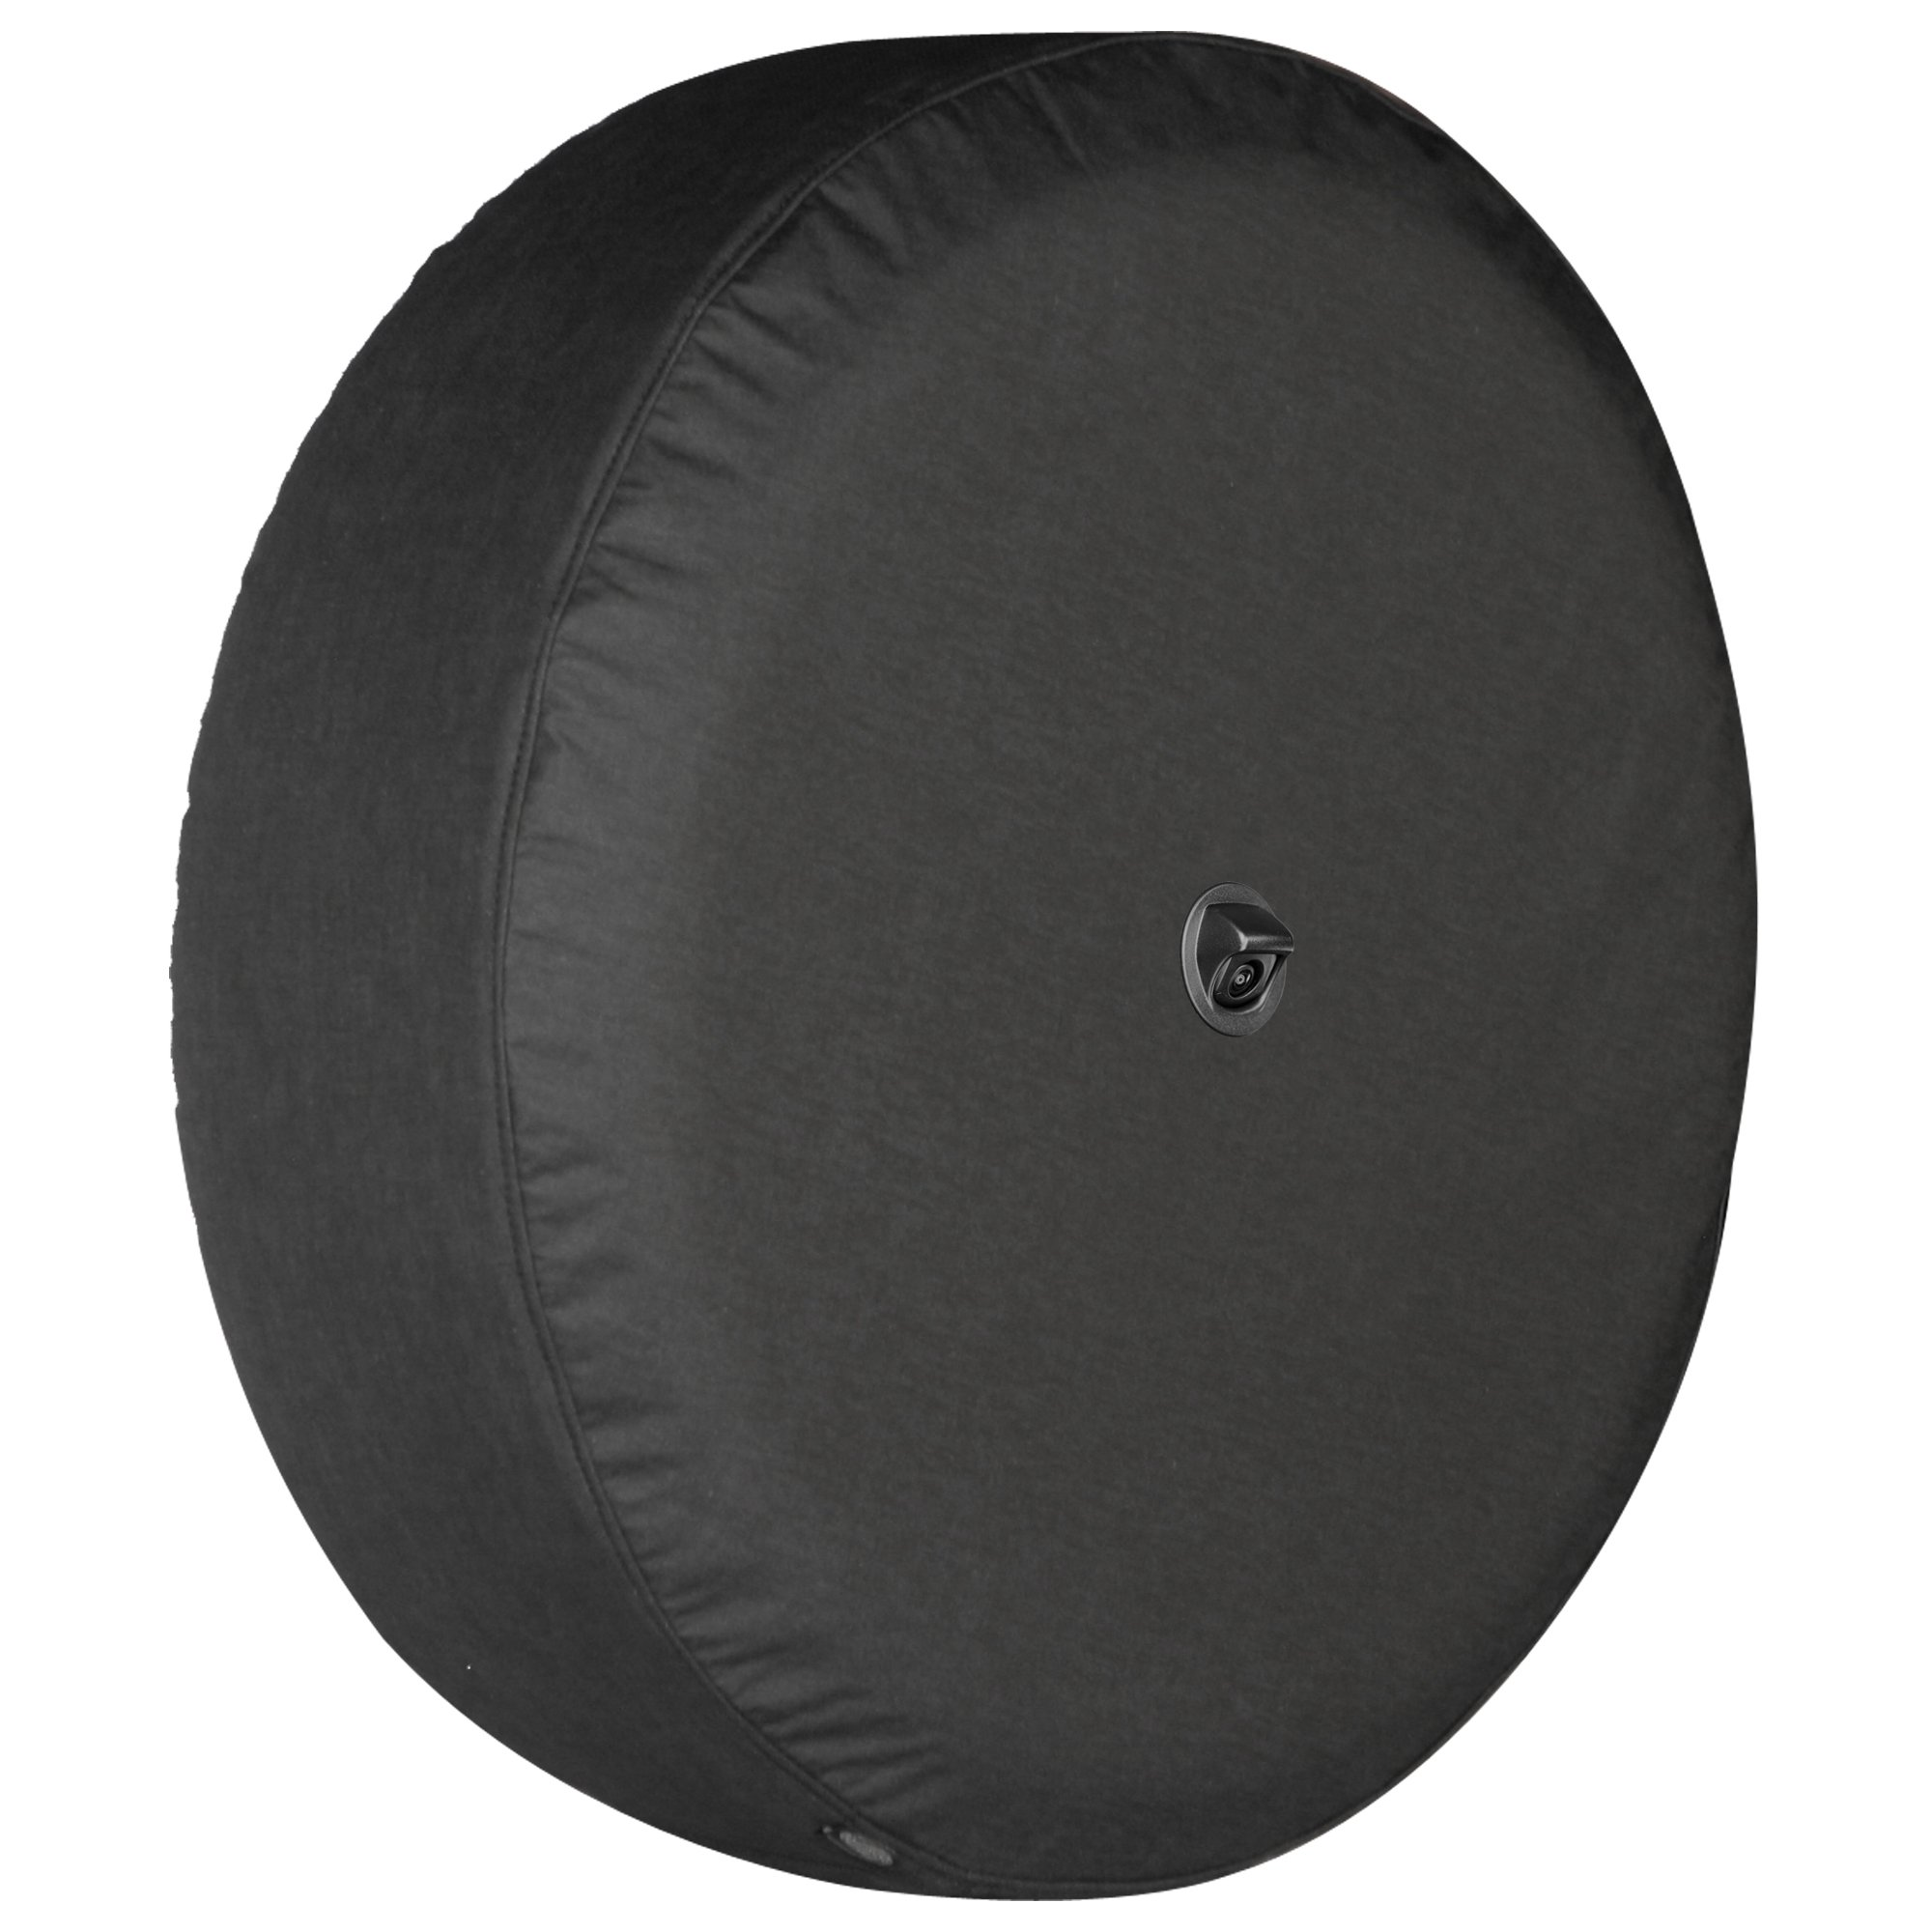 Boomerang - 33'' Soft JL Tire Cover for use with 2018-2019 Jeep Wrangler Rubicon JL (with Back-up Camera) - Black Denim Vinyl - Integrated Camera Hood